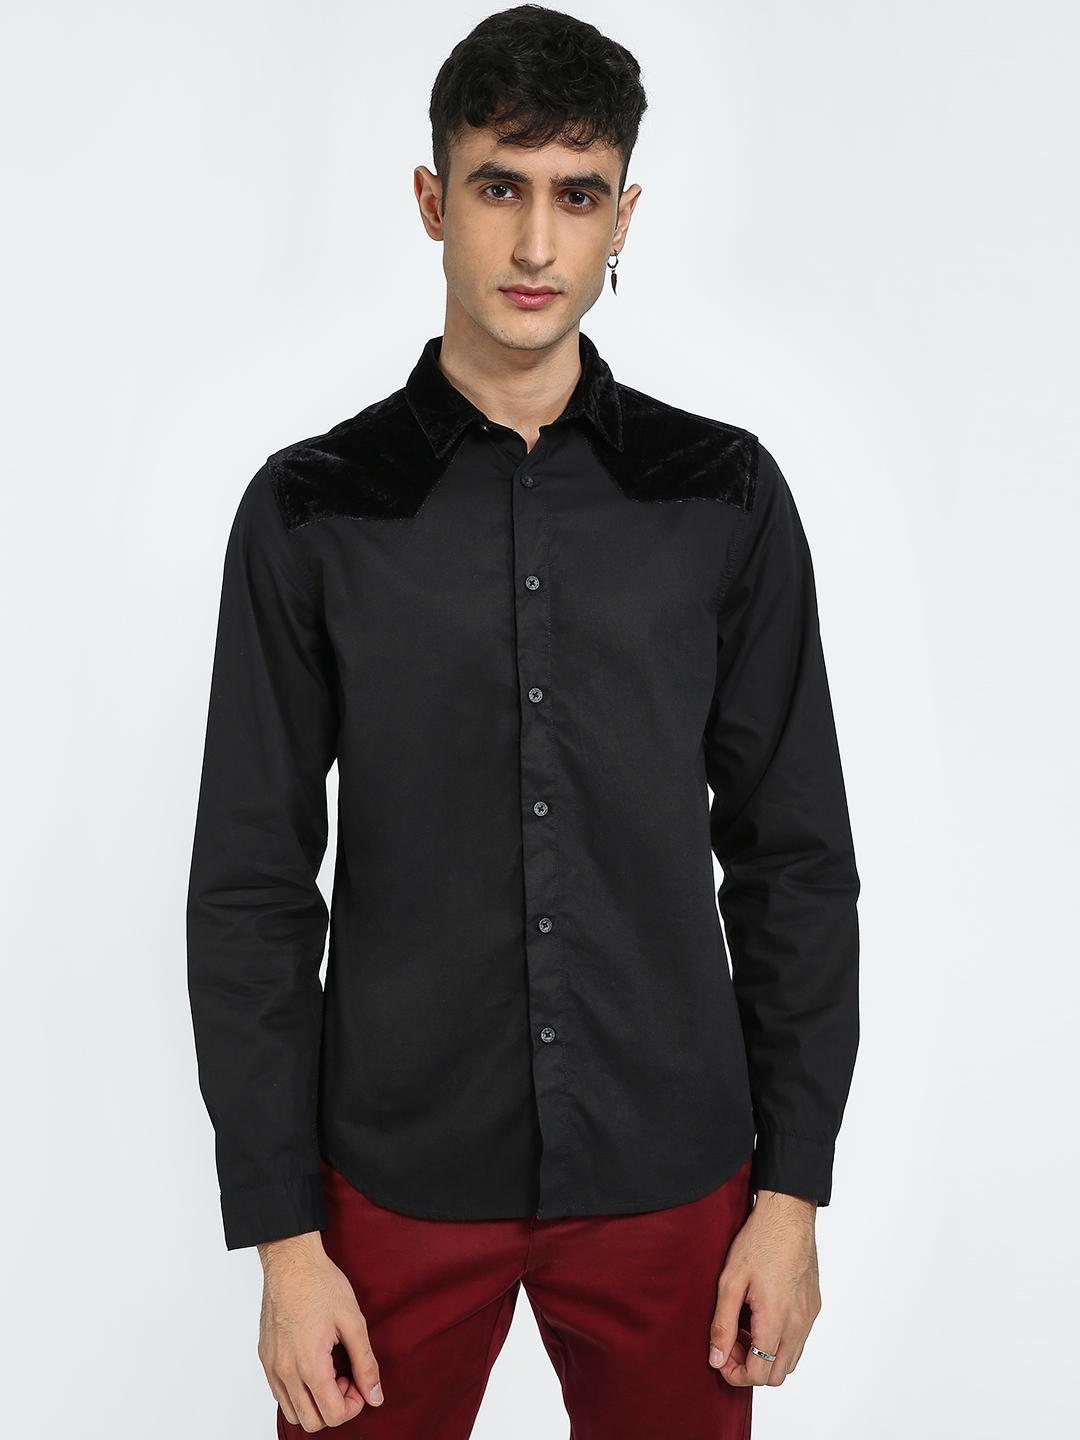 Blue Saint Black Velour Panel Casual Shirt 1